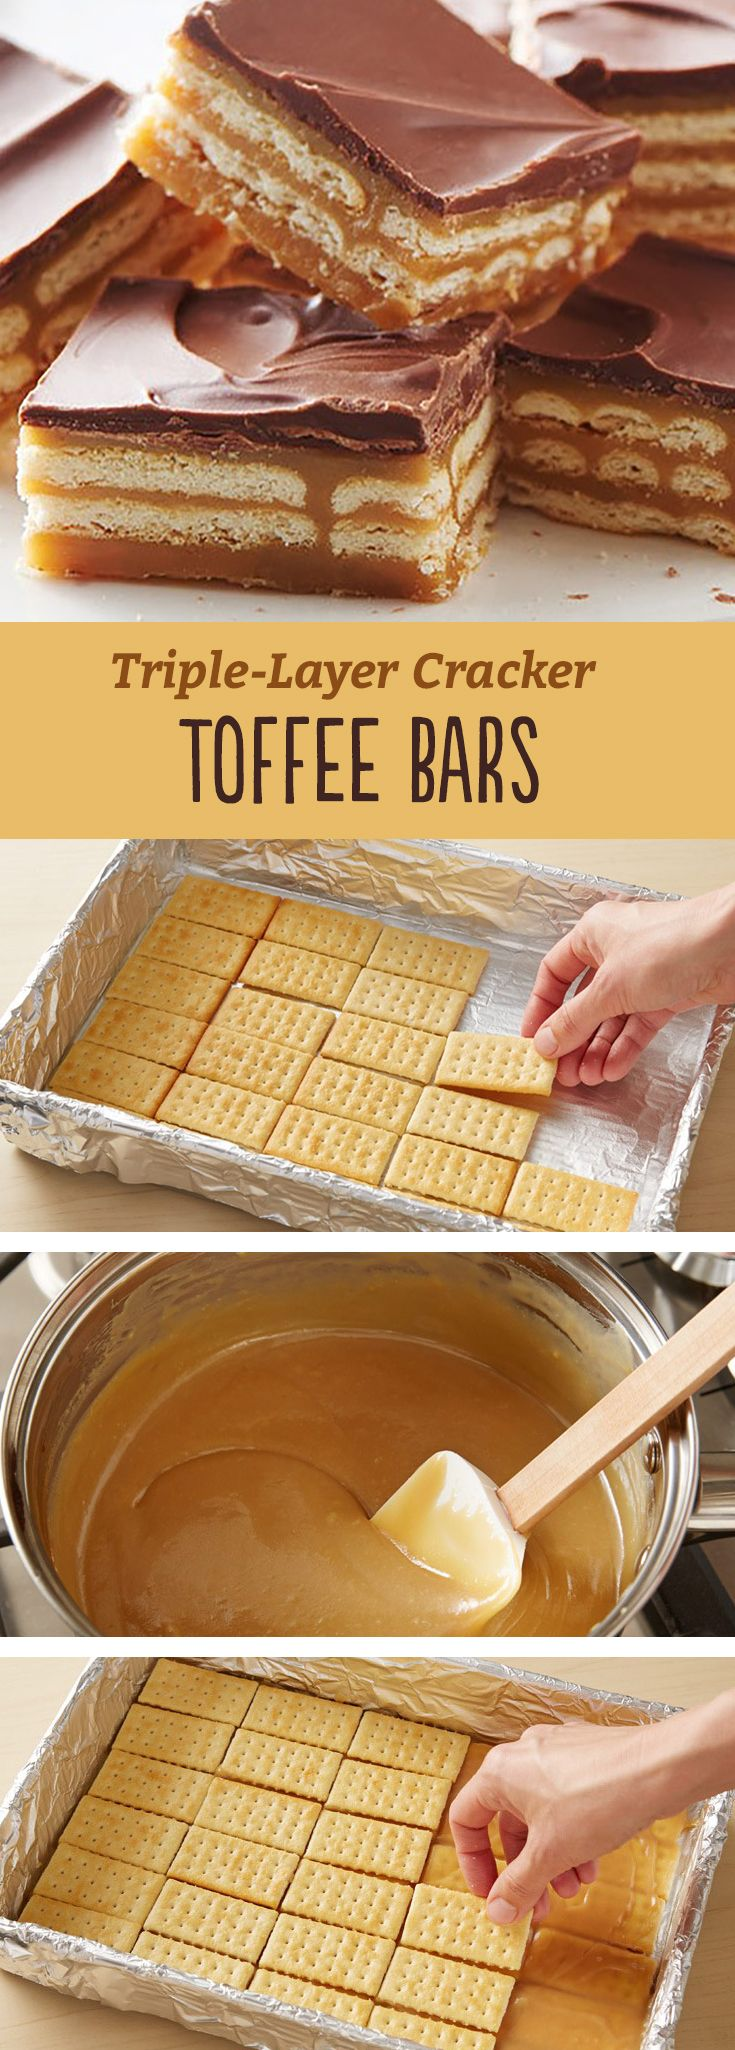 These easy caramel and chocolate layered cracker toffee bars are a twist on a traditional cracker toffee. MORE LESS-